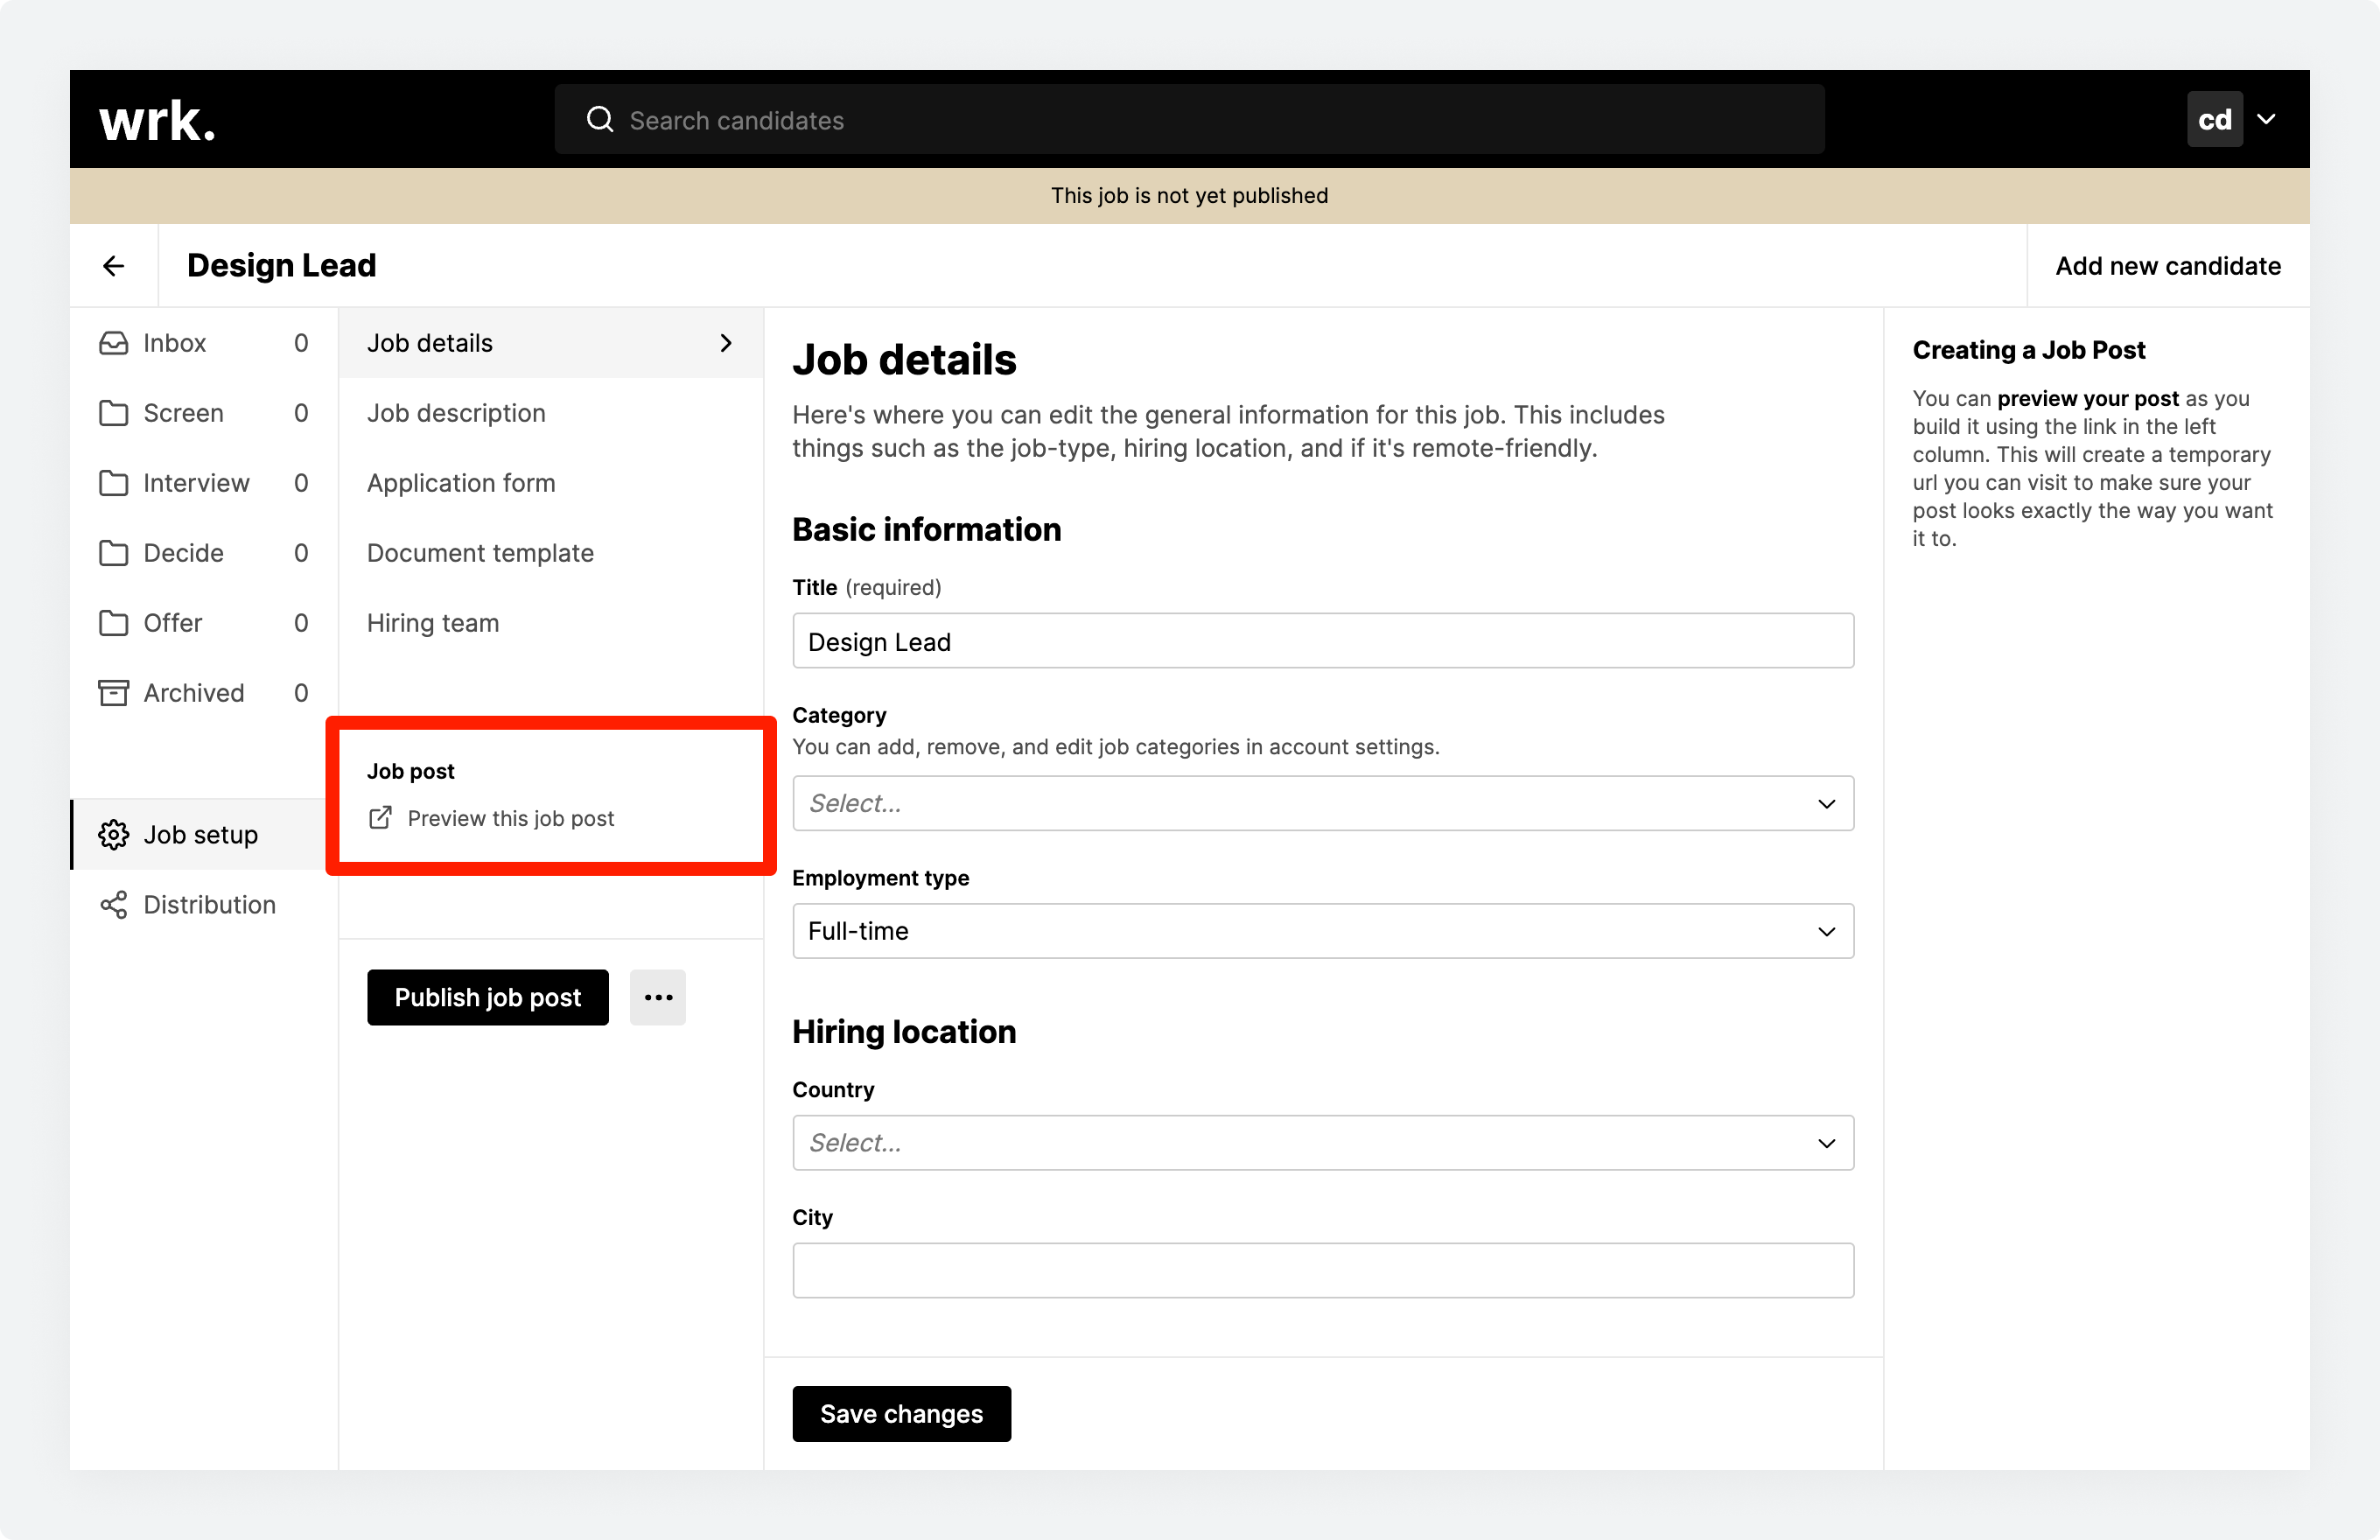 The Job setup section in Wrk with a highlighted Preview this job post link